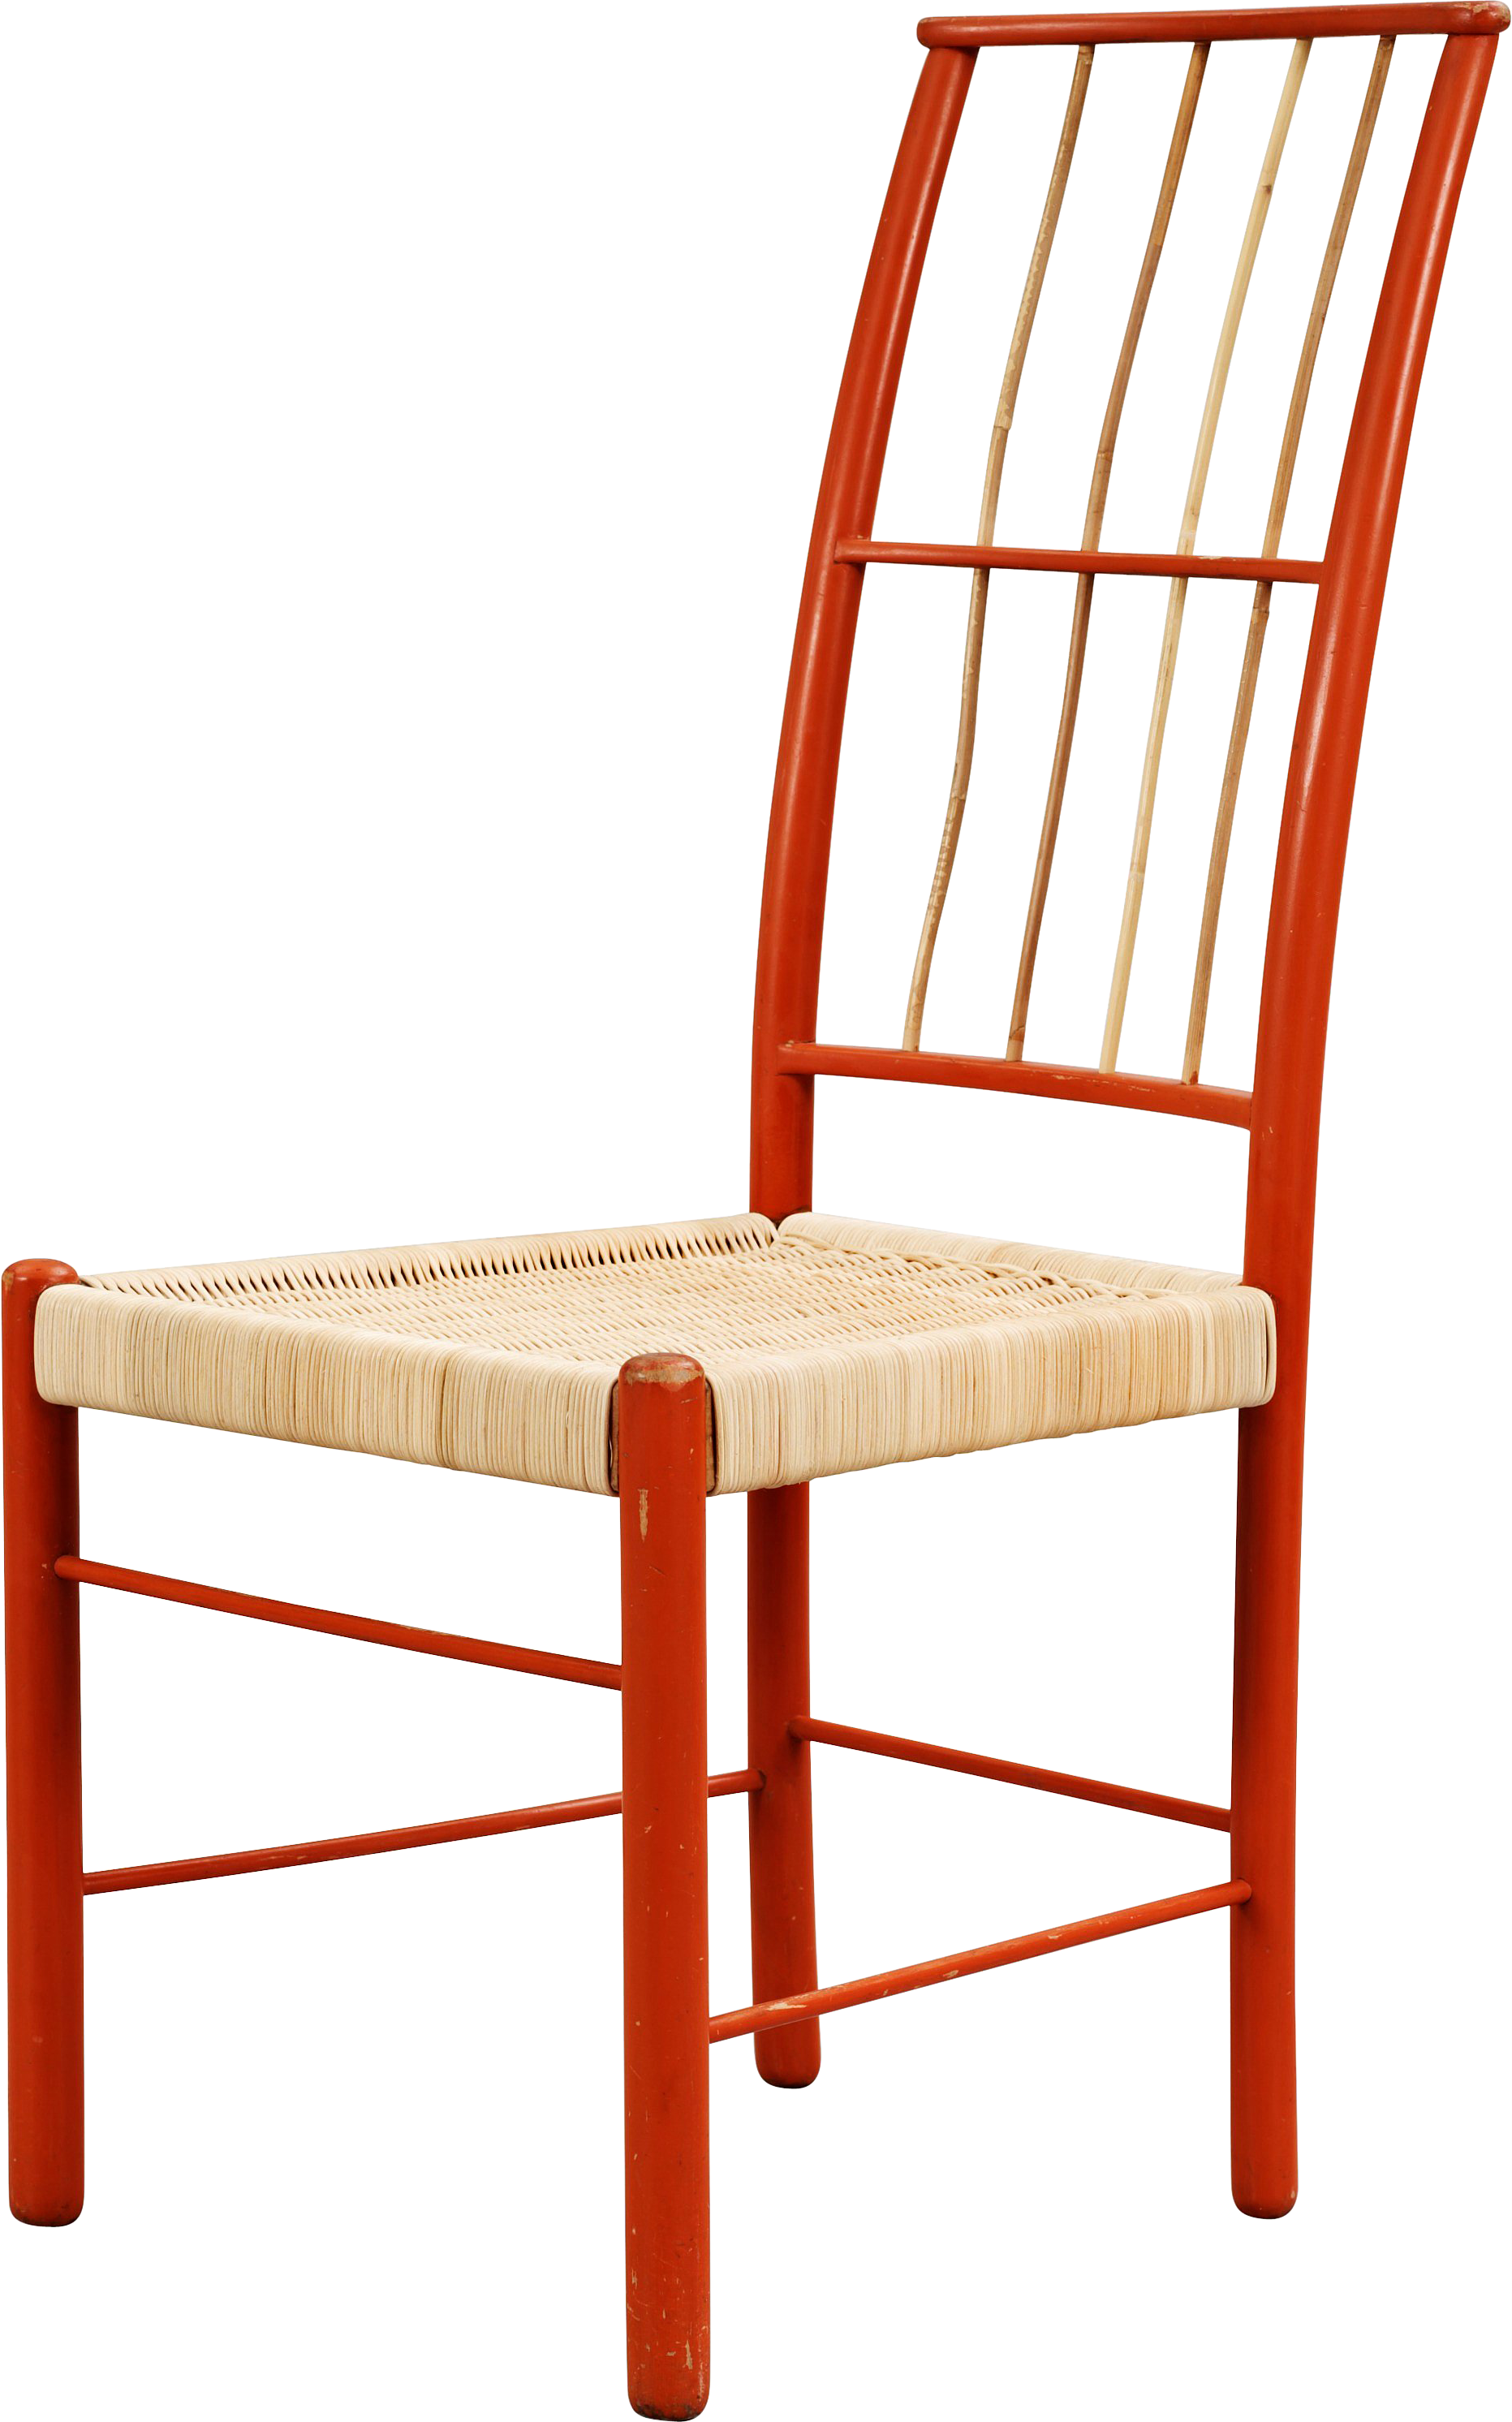 Chair Transparent Image Chair Home Decor Home